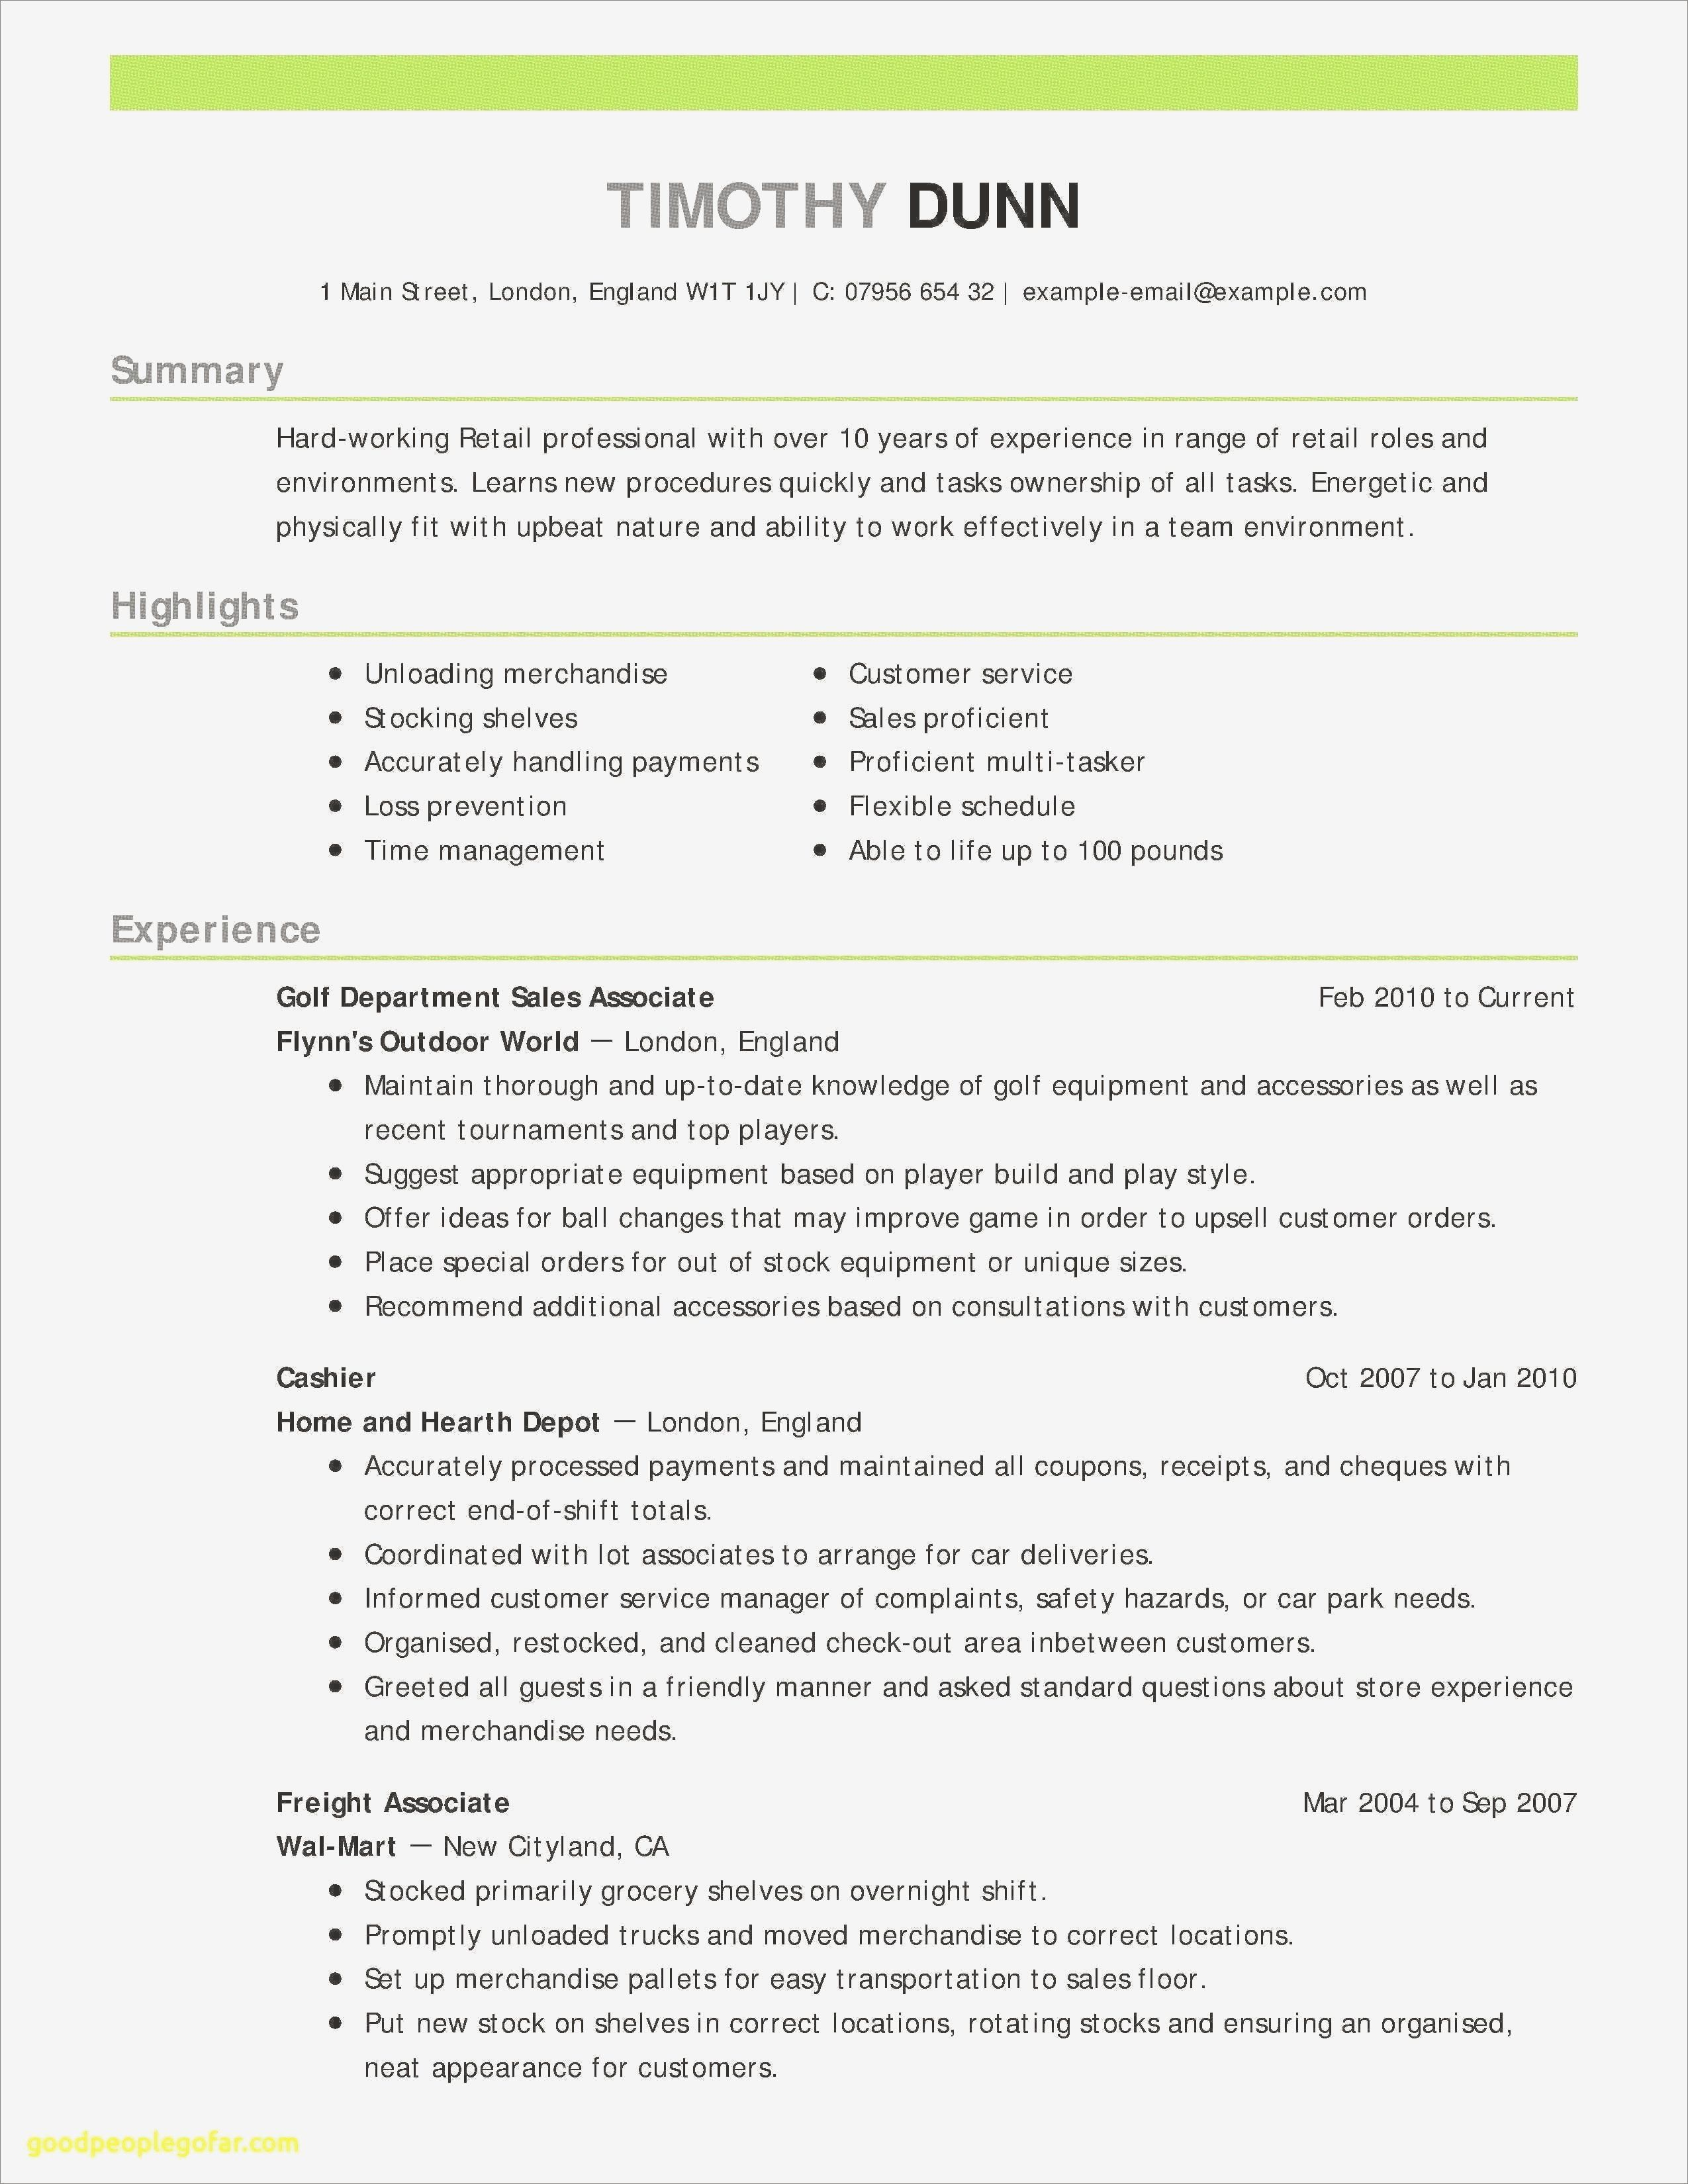 System Admin Resume Example Lovely Hairstyles Professional Resume Examples Scenic Human Resume Objective Examples Good Resume Examples Customer Service Resume